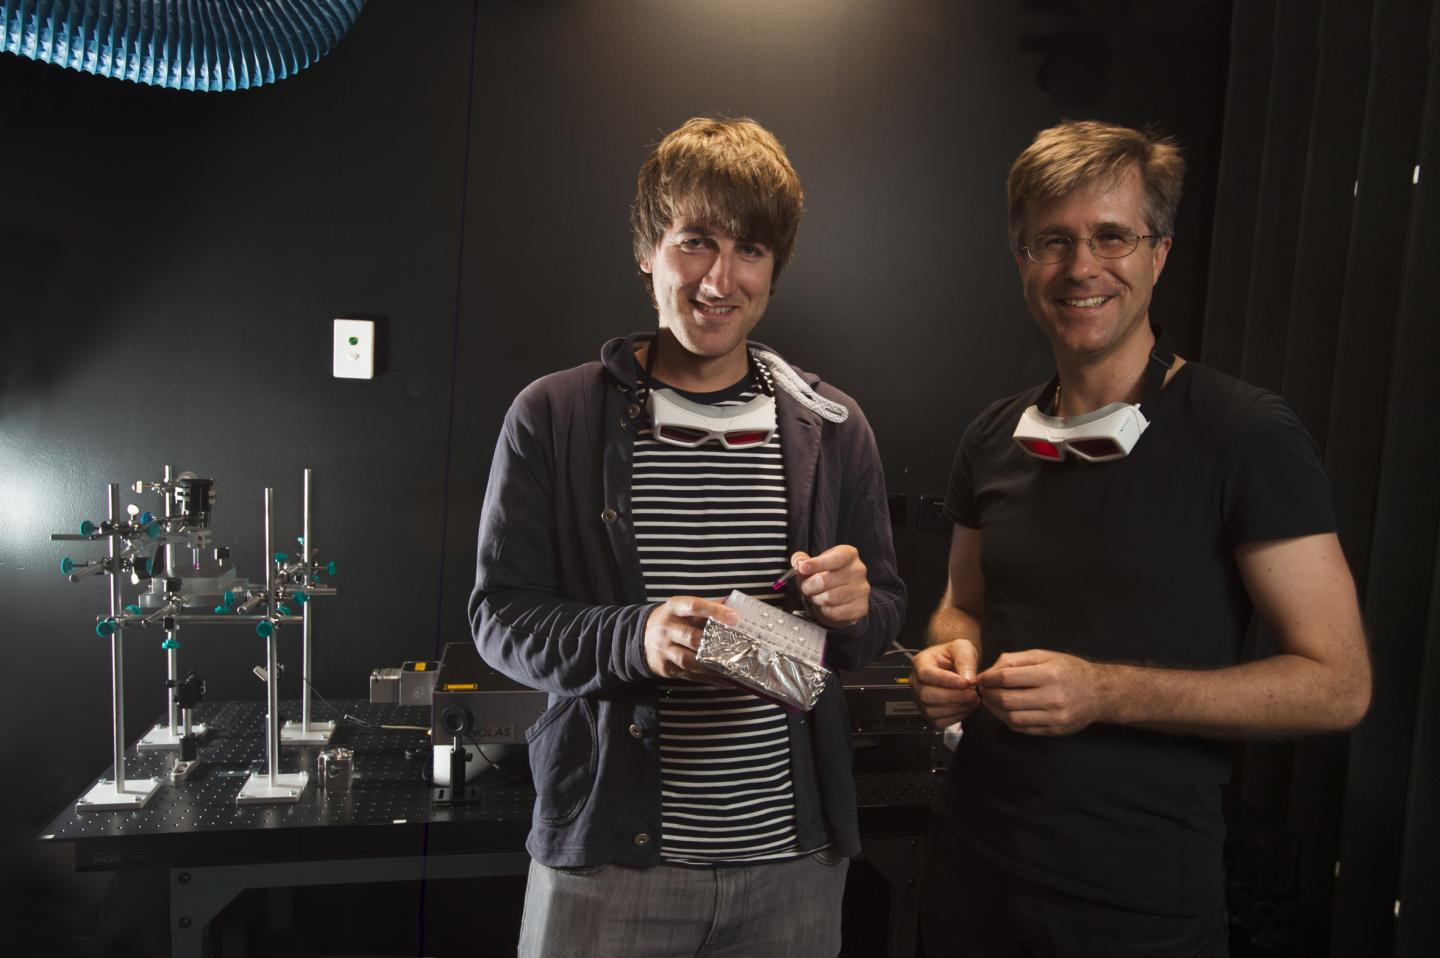 Christopher Barner-Kowollik and Hannes Houck, Queensland University of Technology